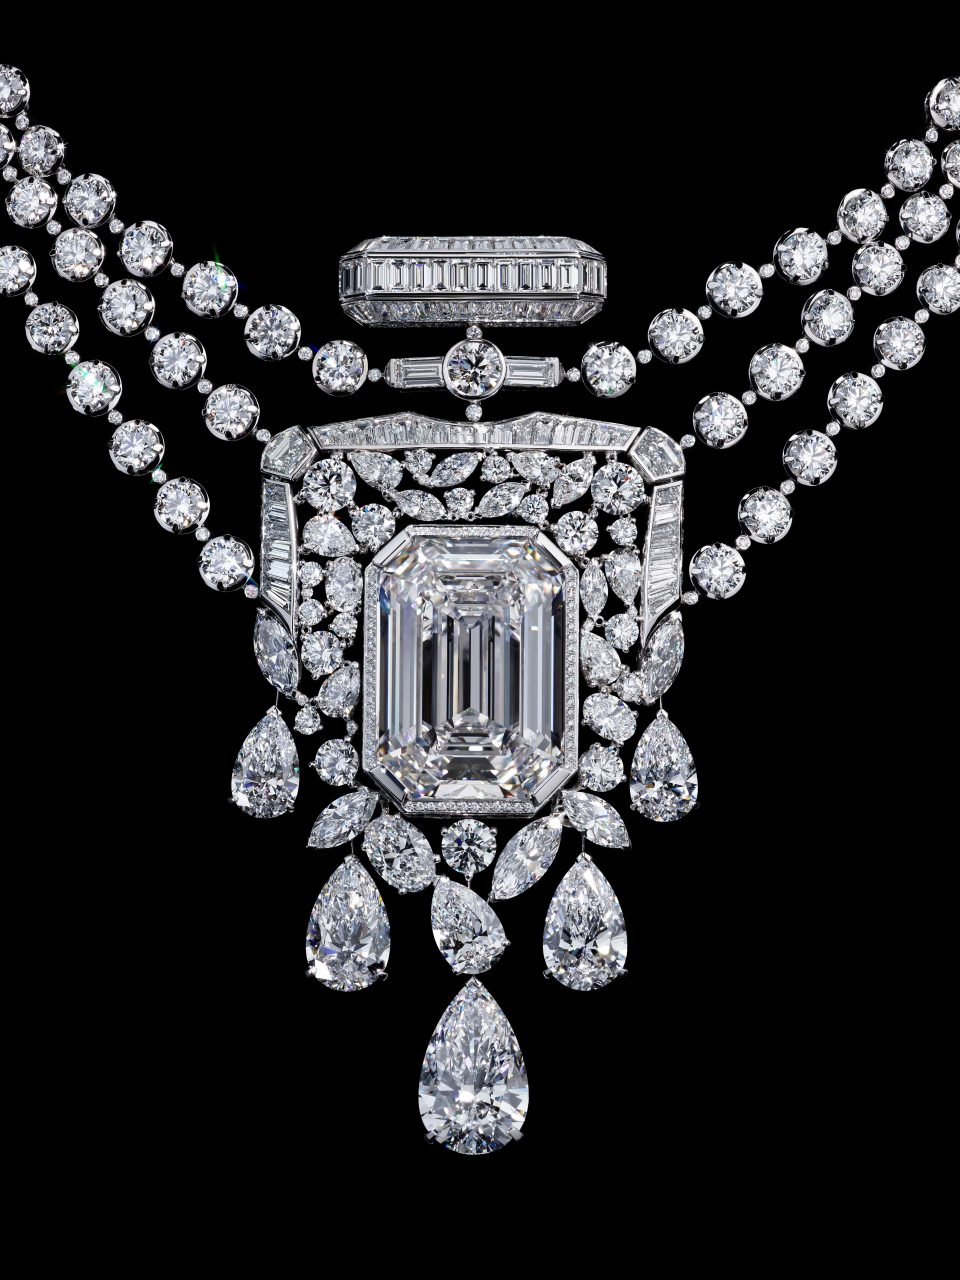 Chanel Celebrates Its Centenary Of The N°5 Perfume With A 55.55-Carat  Diamond Necklace